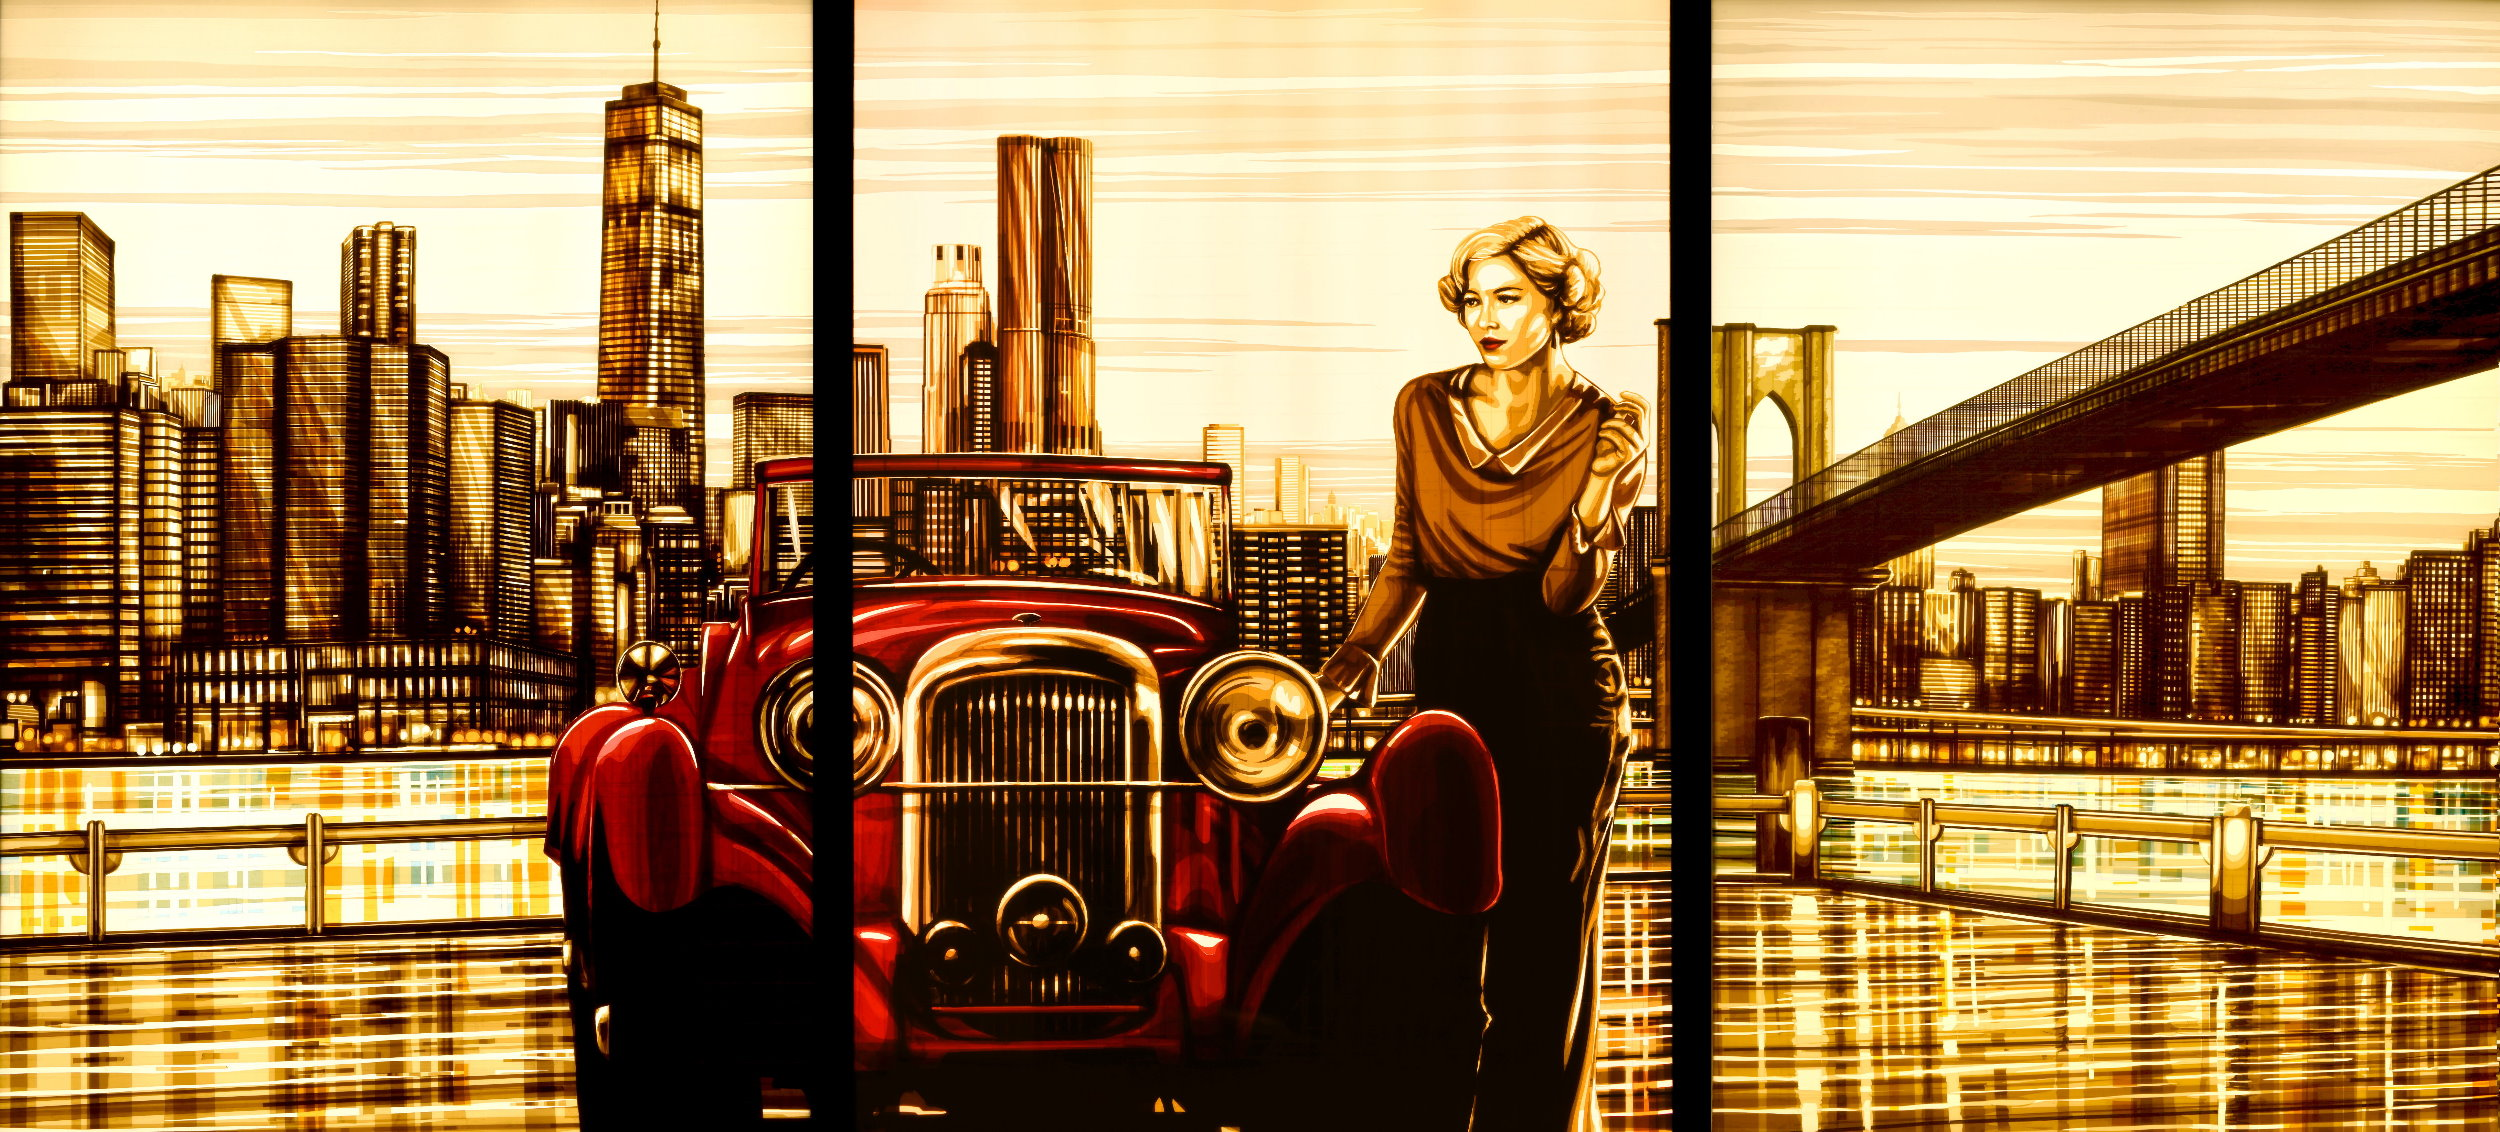 Contemporary artwork made of packing tape. It shows a woman leaning on a red car in front of the skyline of New York, with a bridge and the Hudson river in the background.